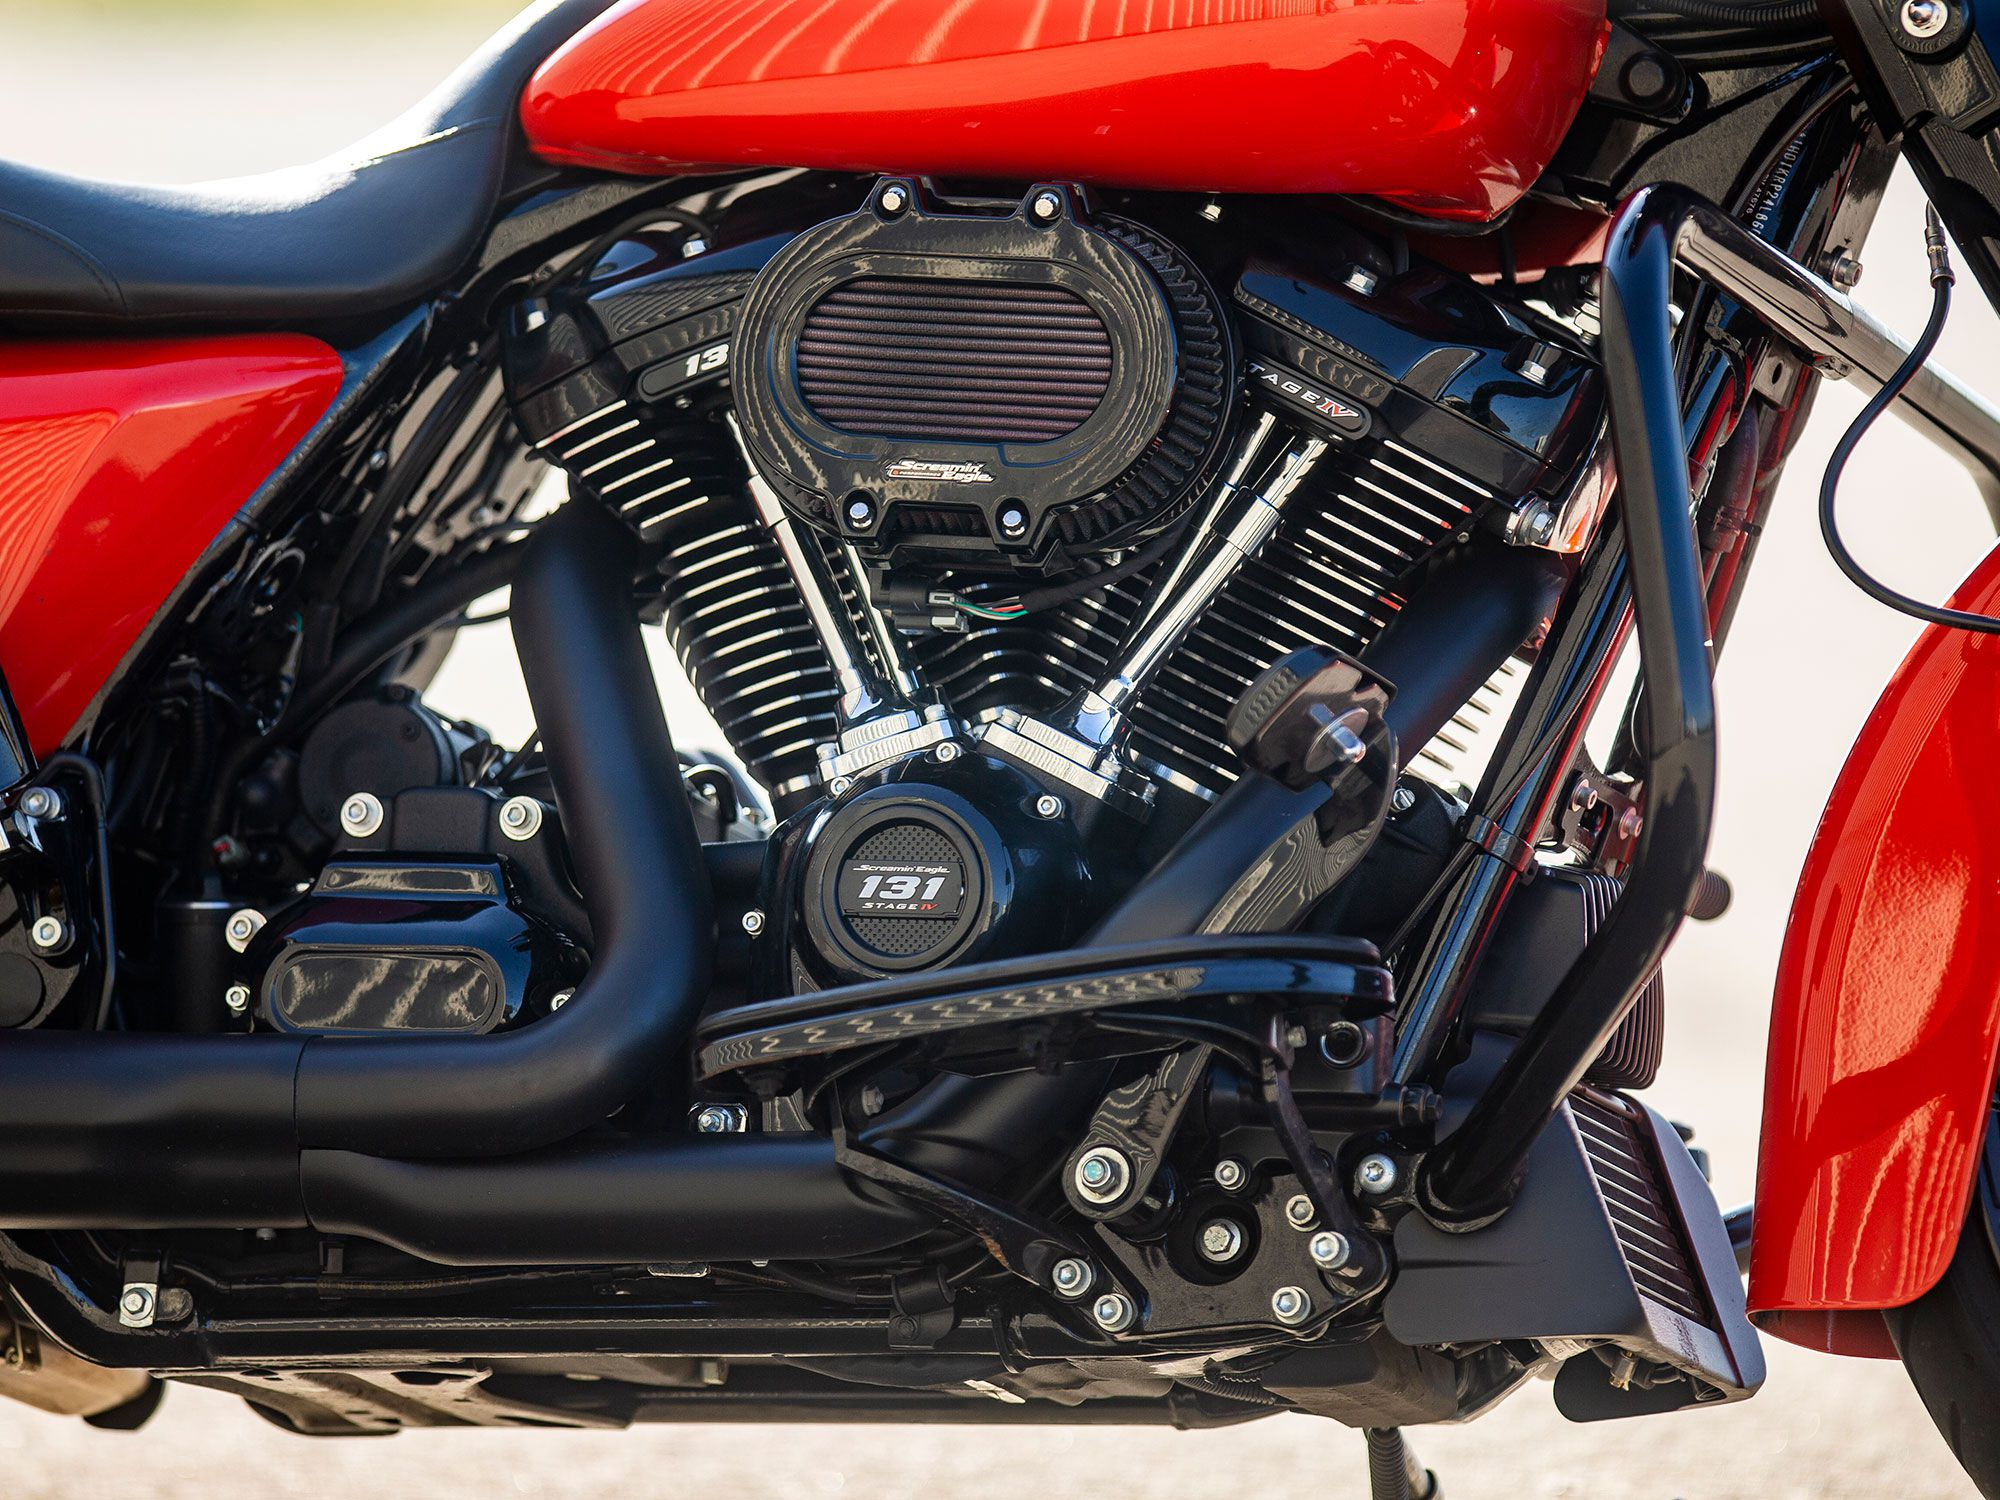 After we tested the Milwaukee-Eight 114, the Screamin' Eagle 131 crate engine was installed.